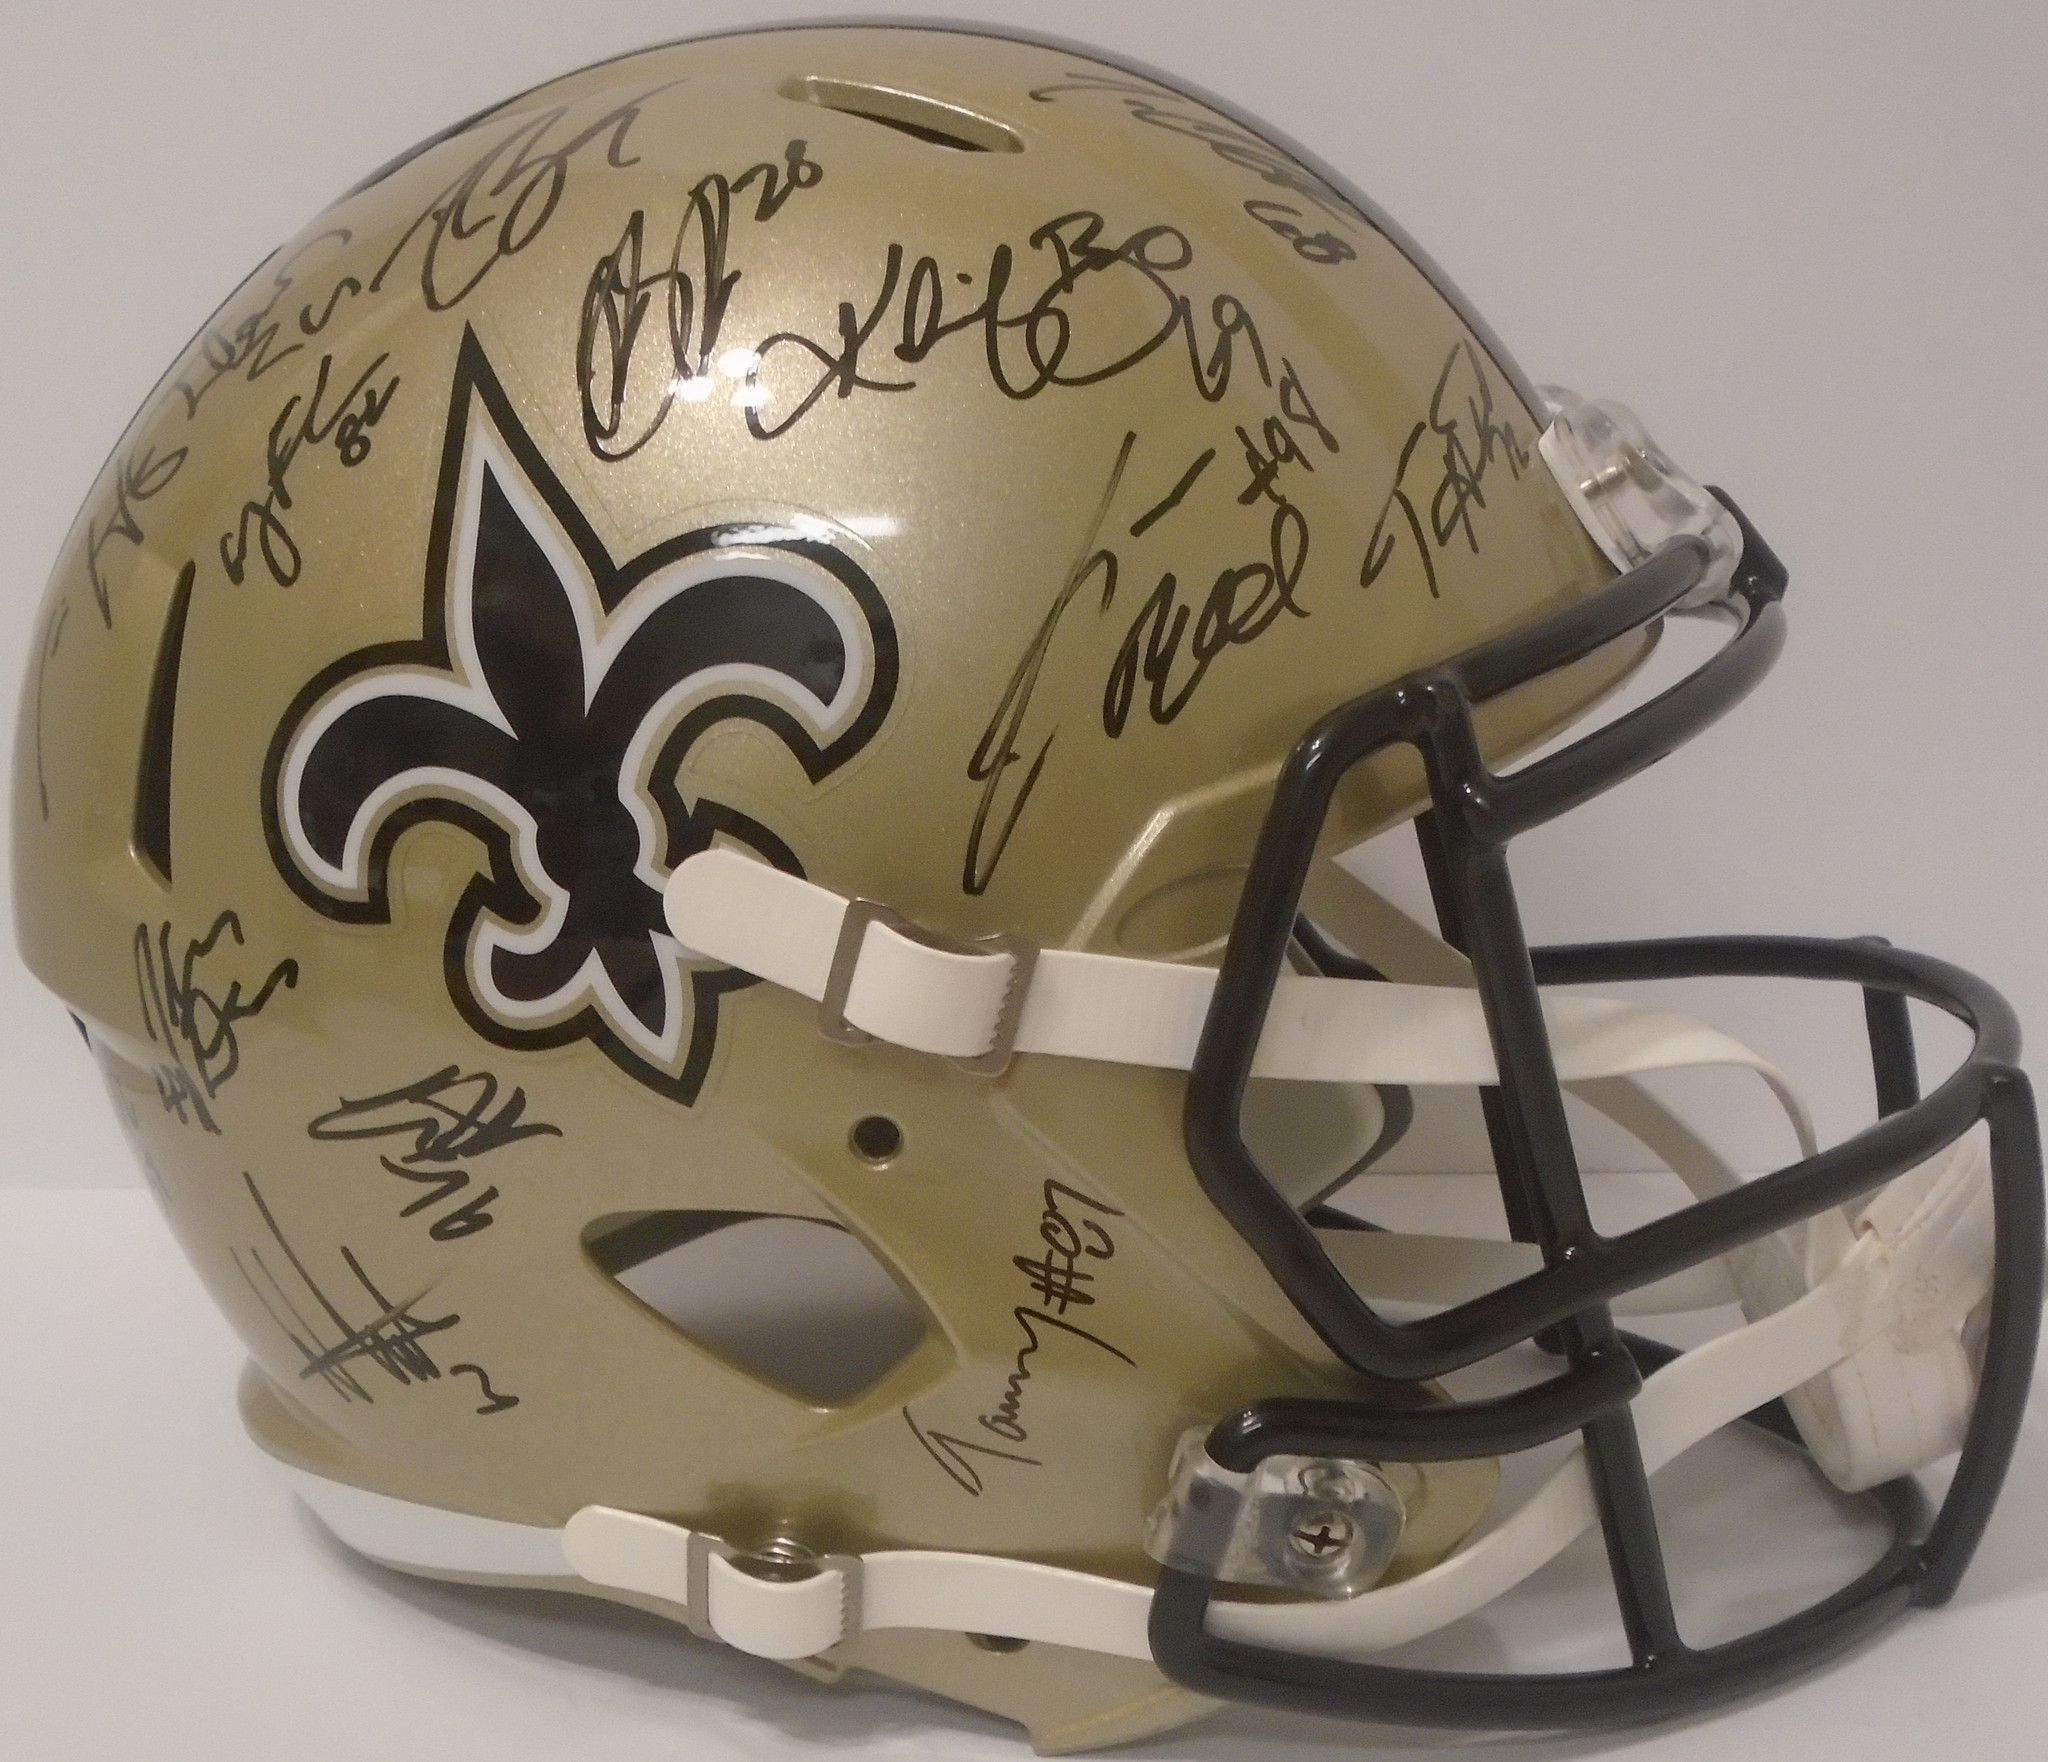 edf2124a14f 2016 New Orleans Saints Team Autographed Riddell Speed Style Full Size  Deluxe Replica Football Helmet